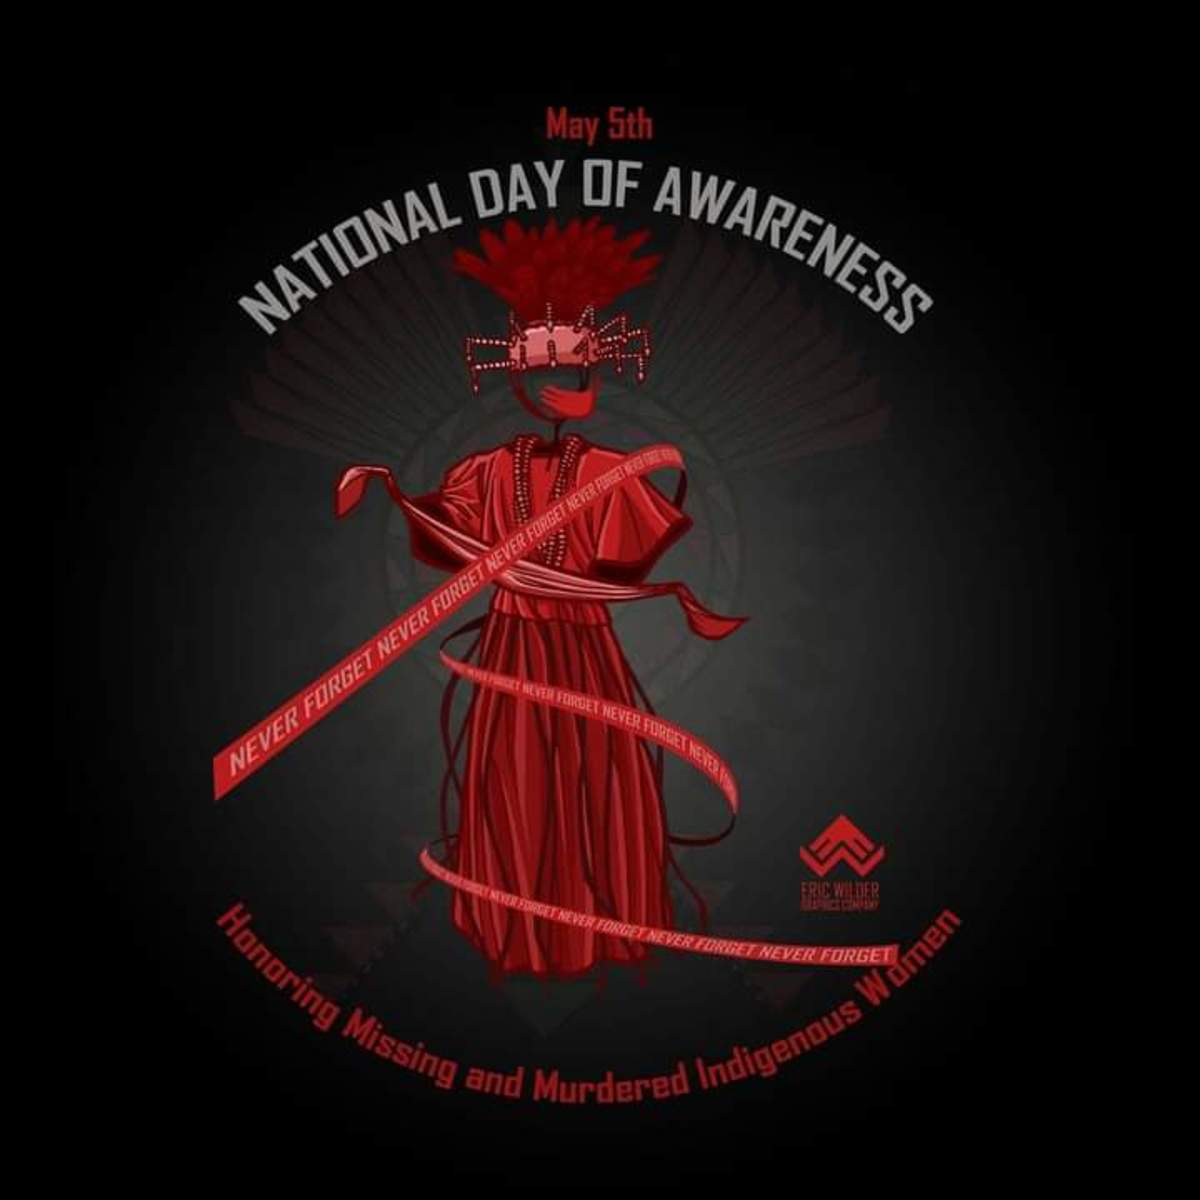 Pictured: May 5th National Day of Awareness Honoring Missing and Murdered Indigenous Women poster.